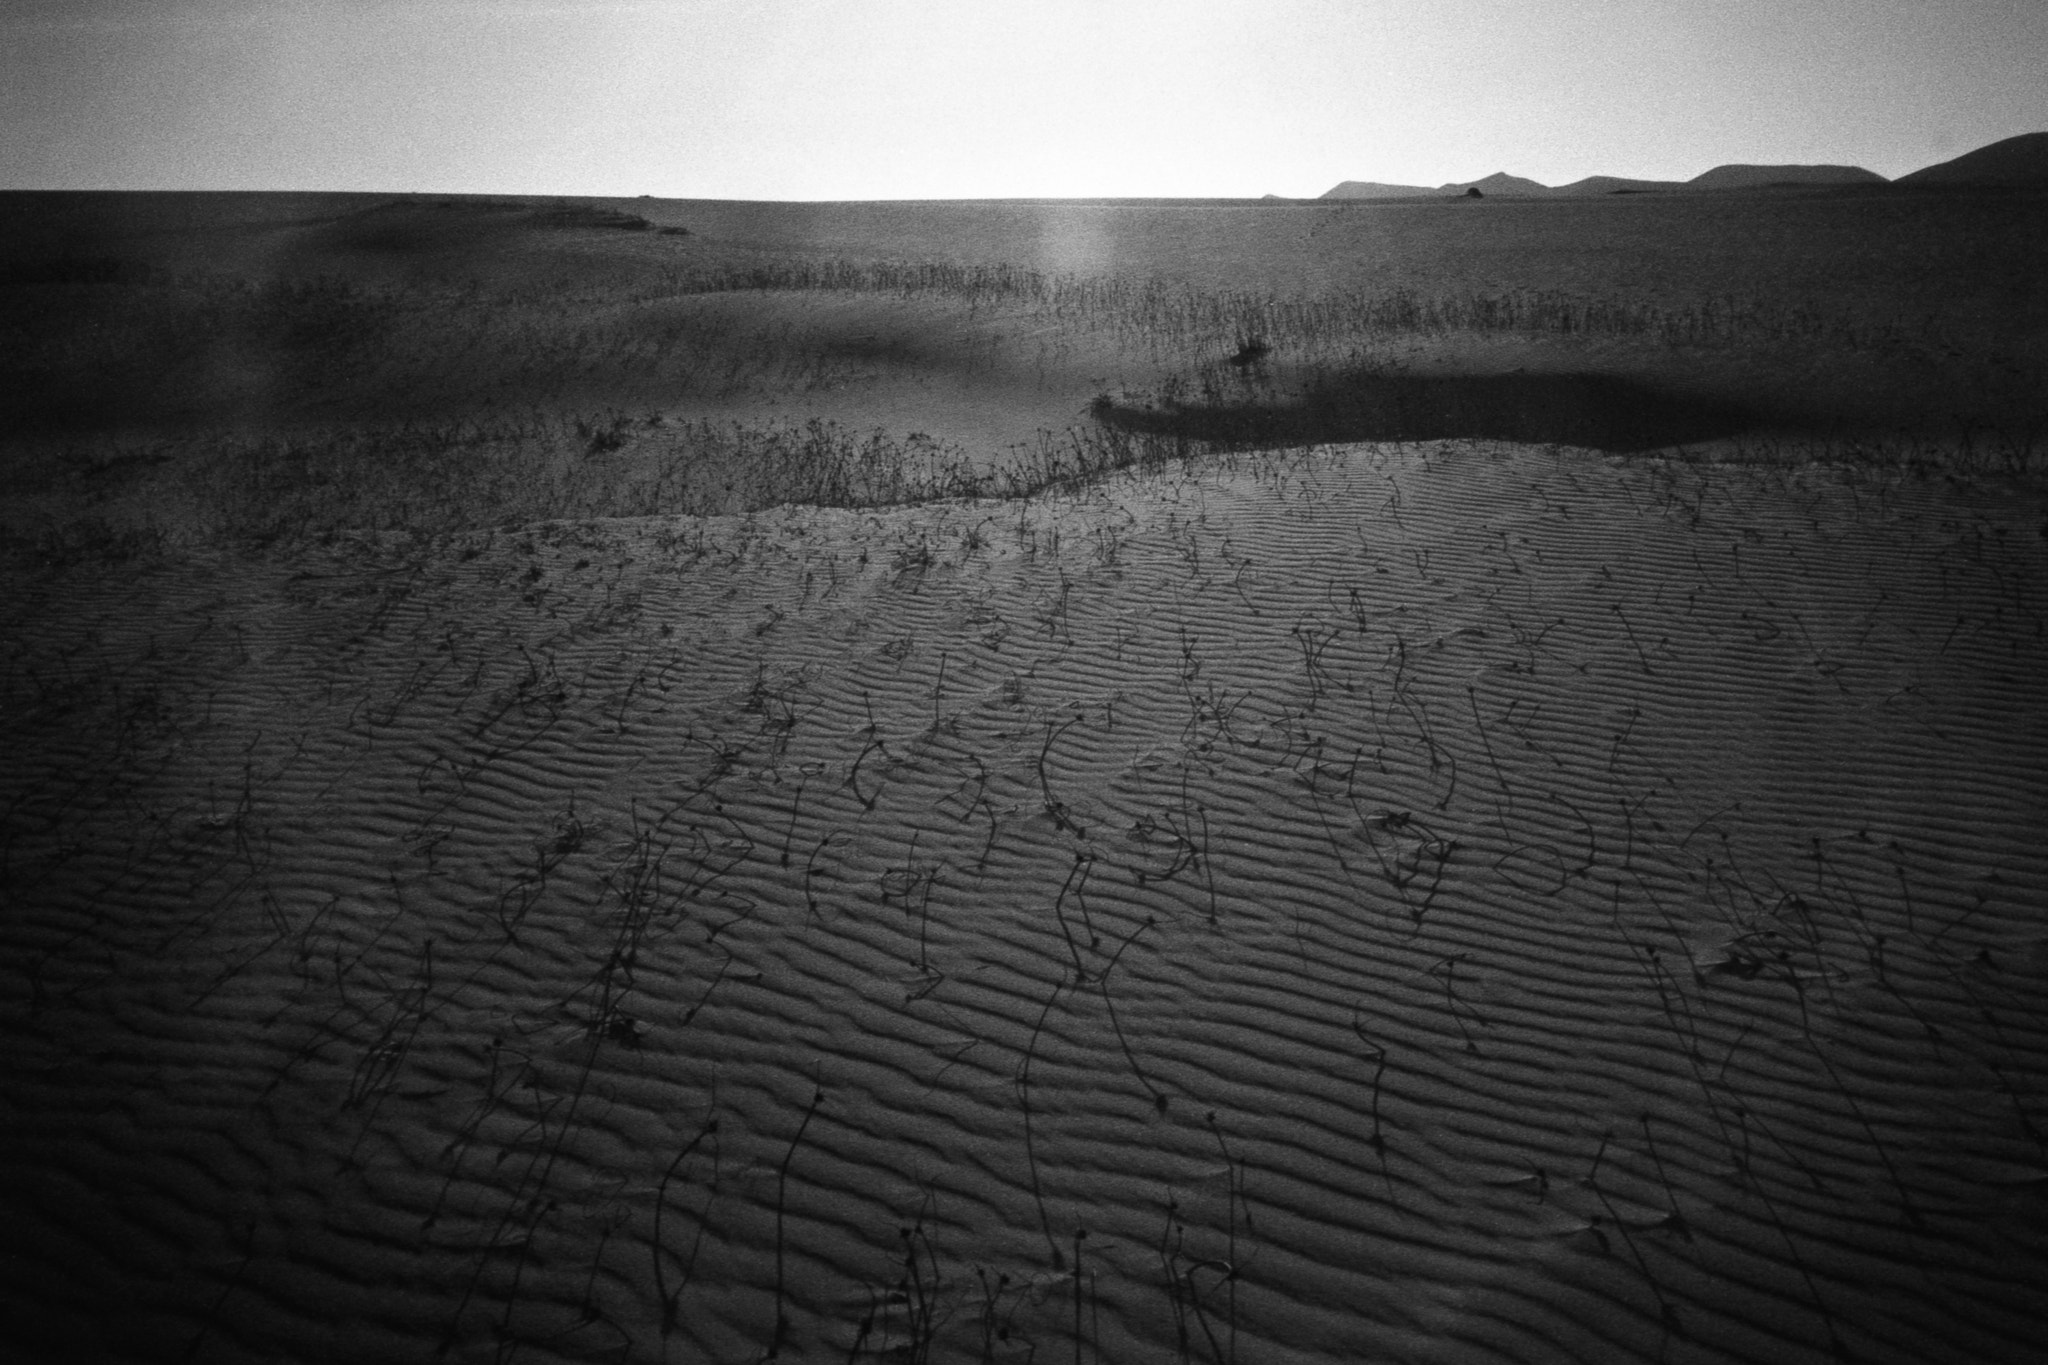 Photograph barren plain by Peter Wilbourne on 500px